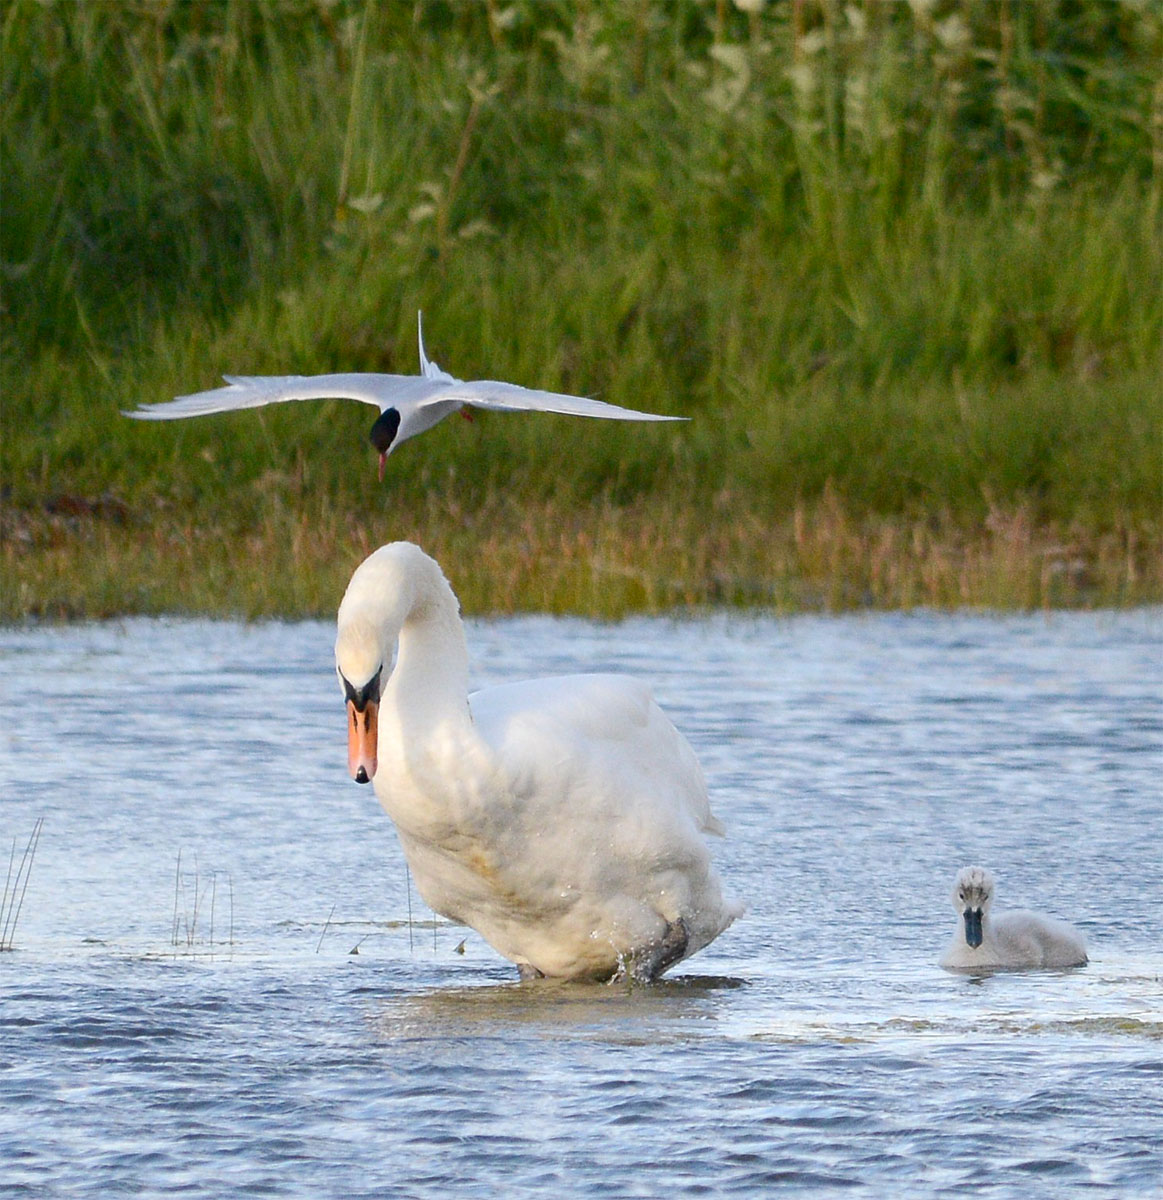 Arctic tern defending its nest from a swan who wandered a bit too close!